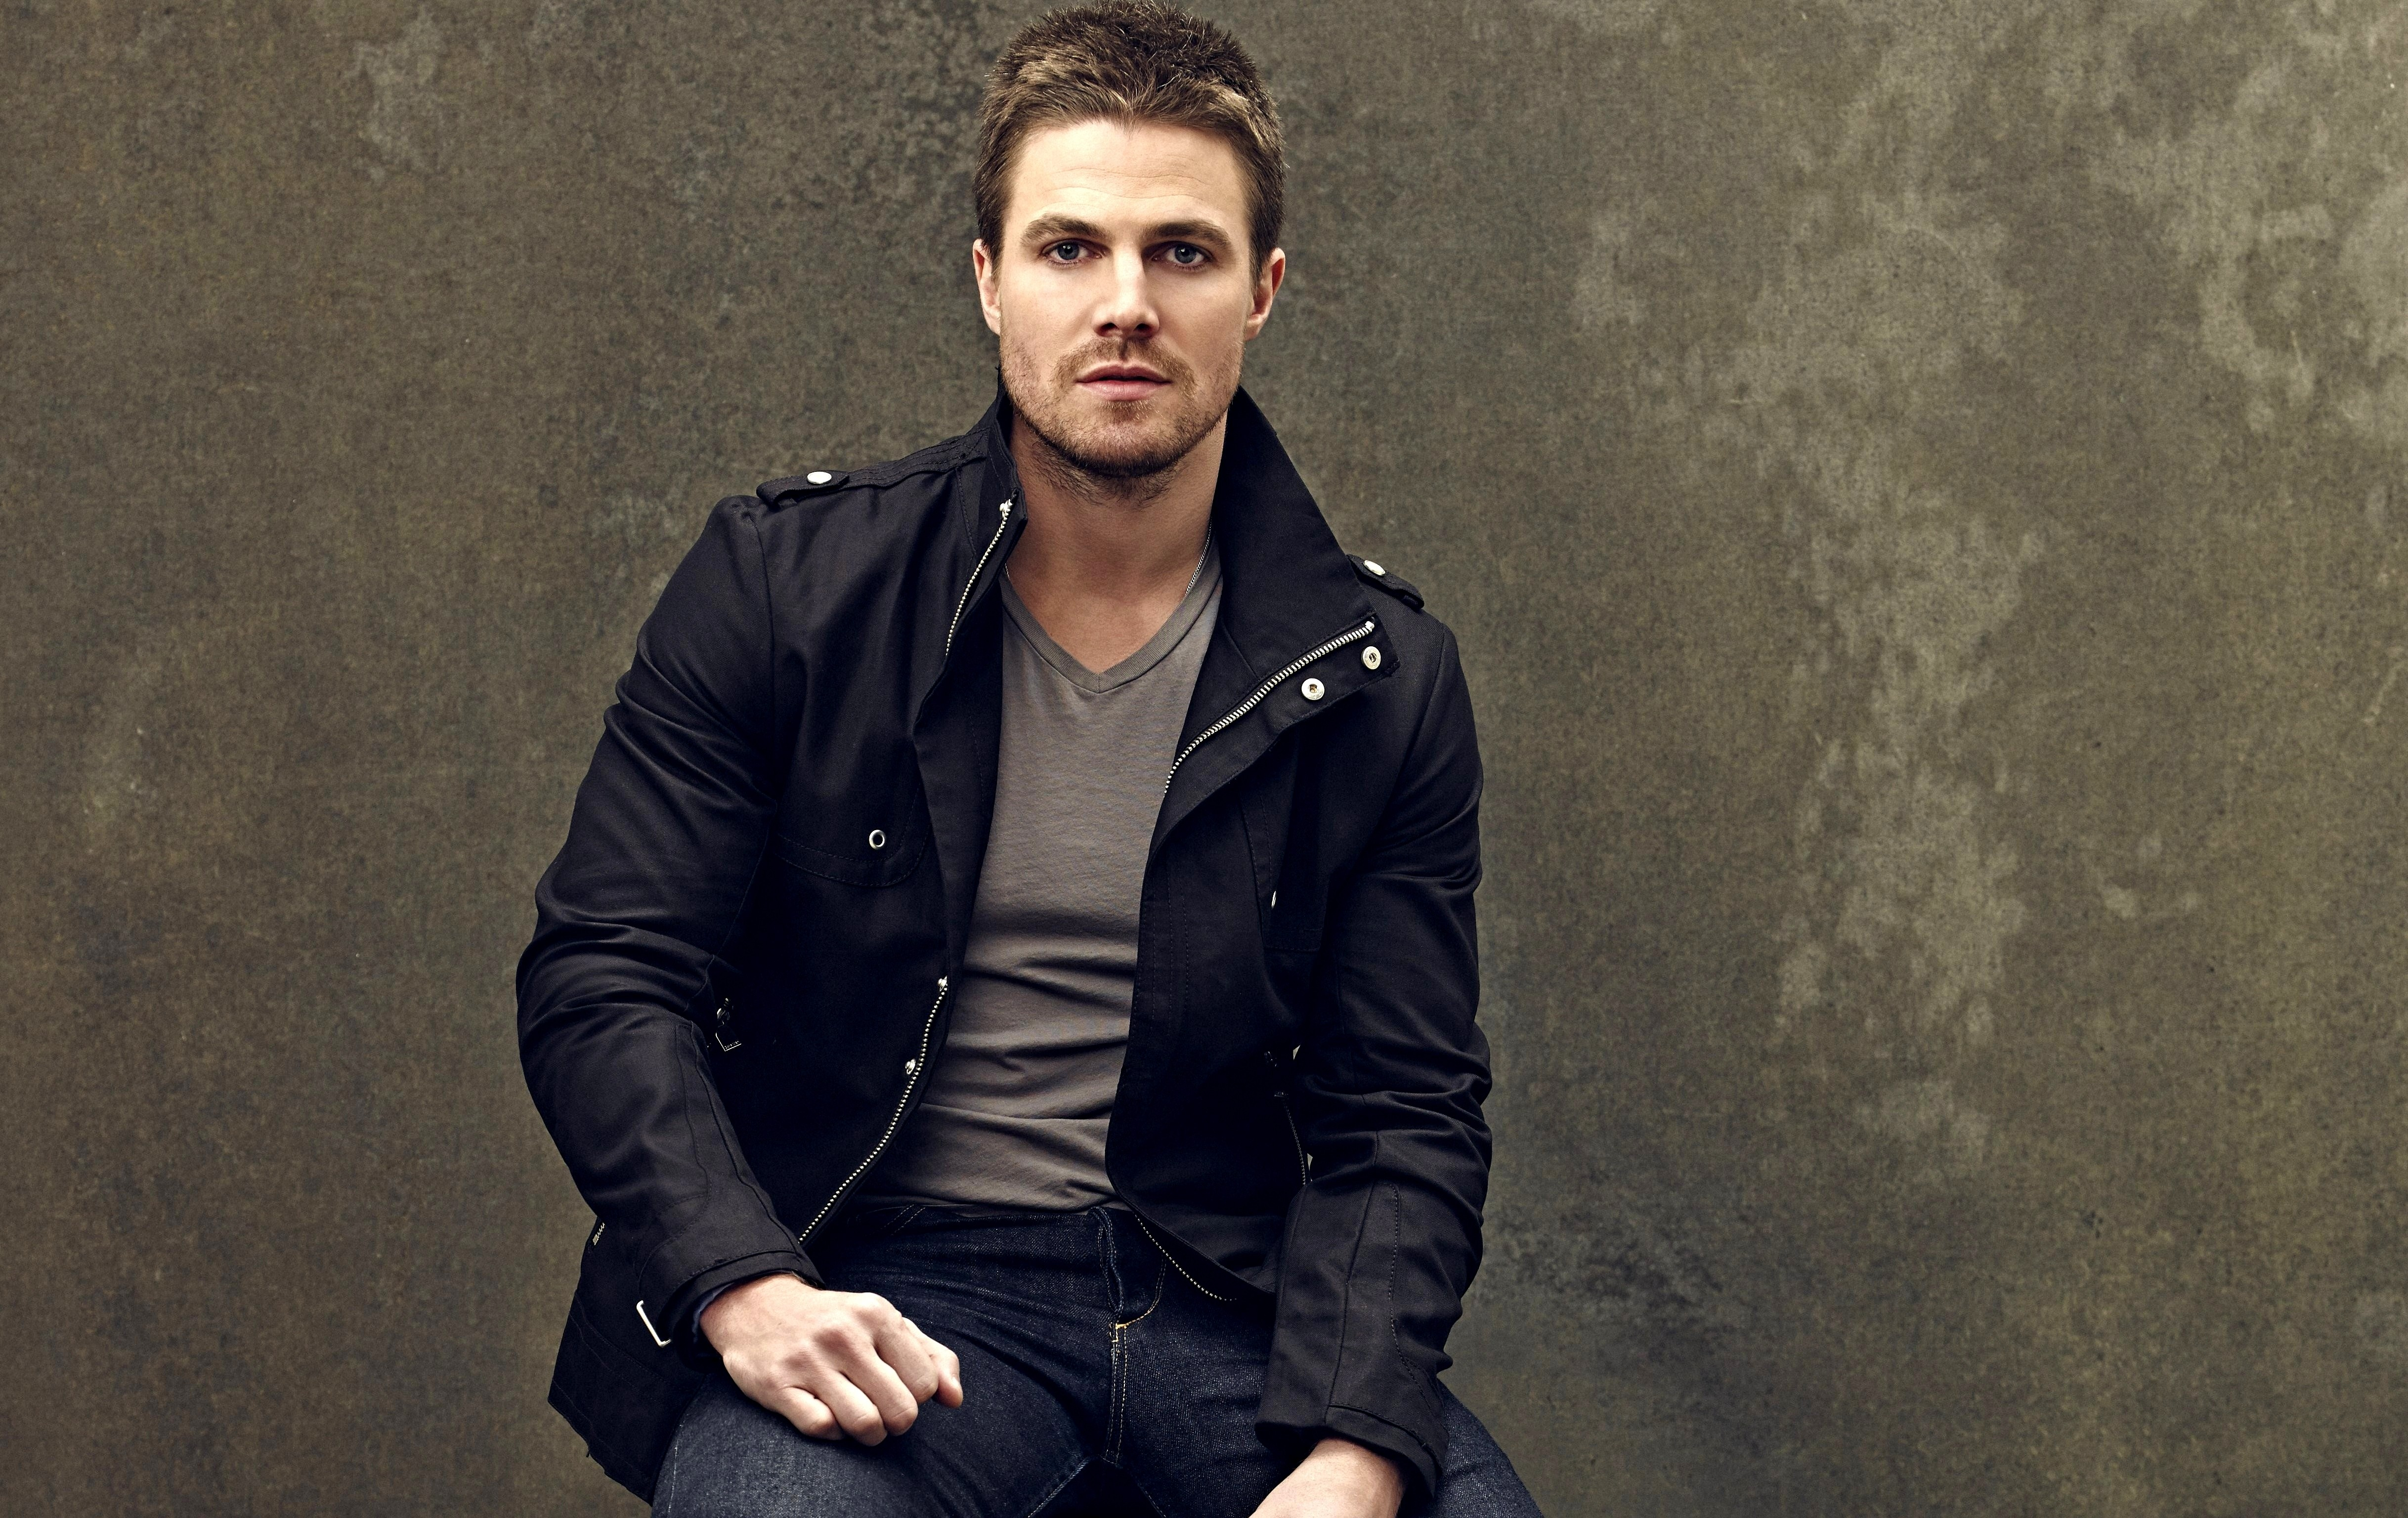 Fifty Shades Of Grey Quotes Wallpaper Wallpaper Stephen Amell Most Popular Celebs In 2015